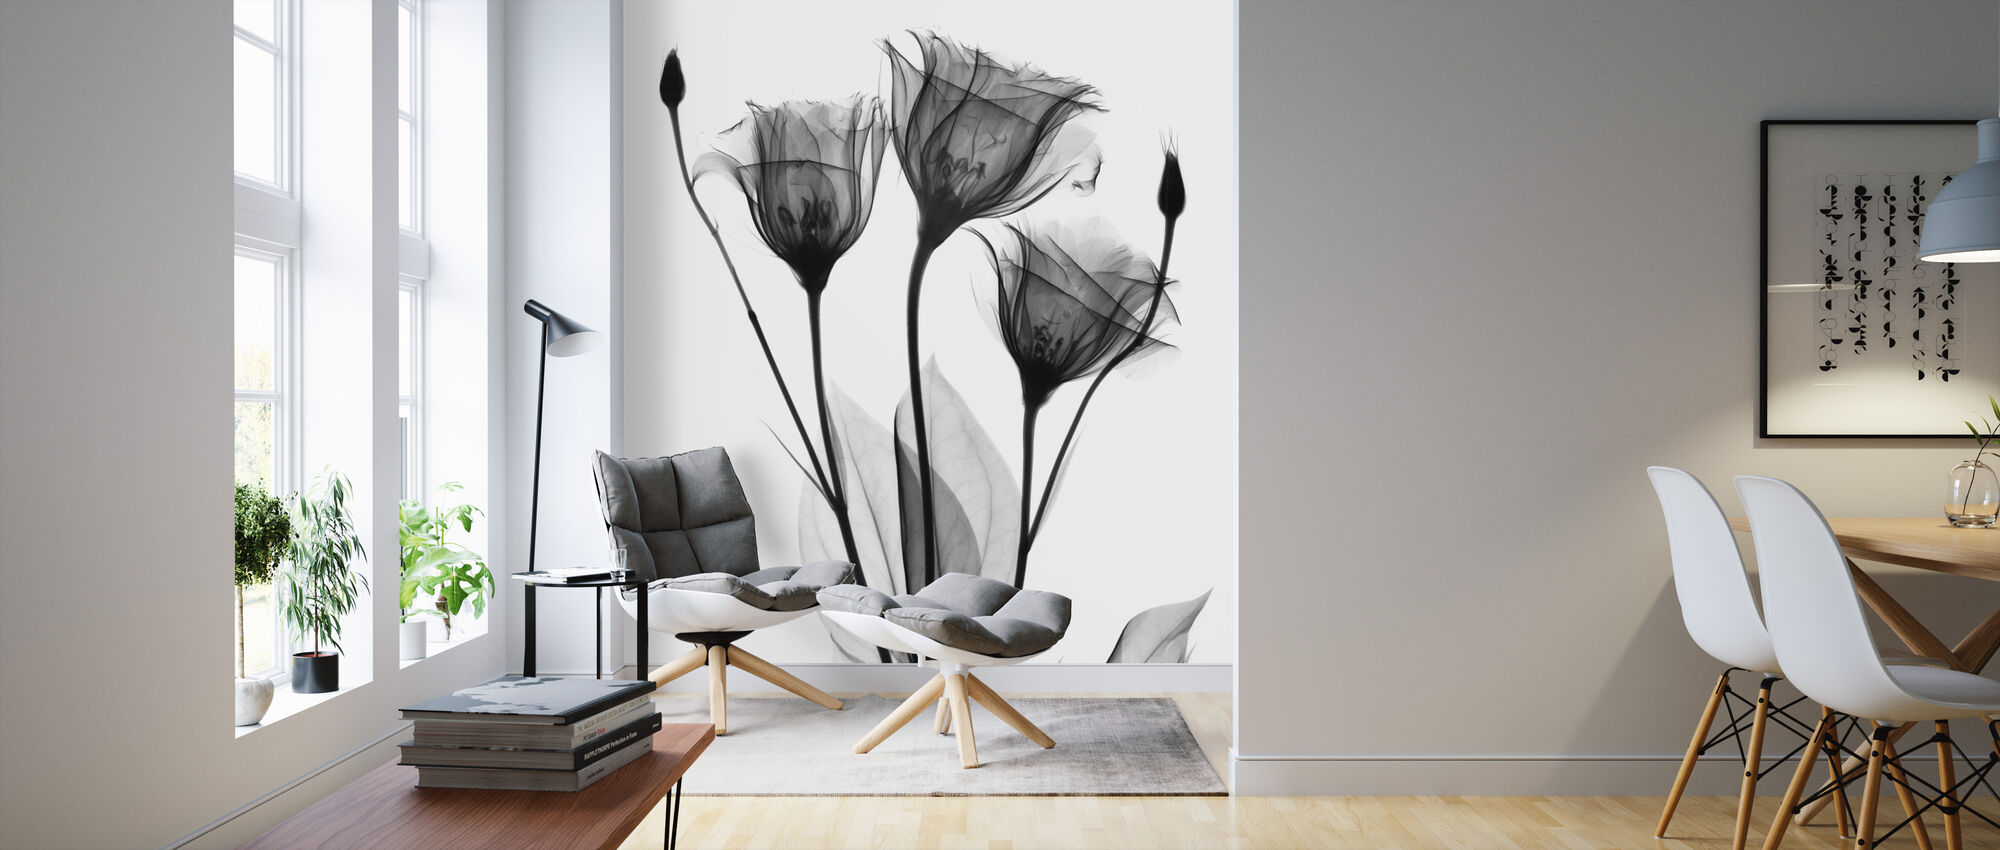 Gentian - Wallpaper - Living Room